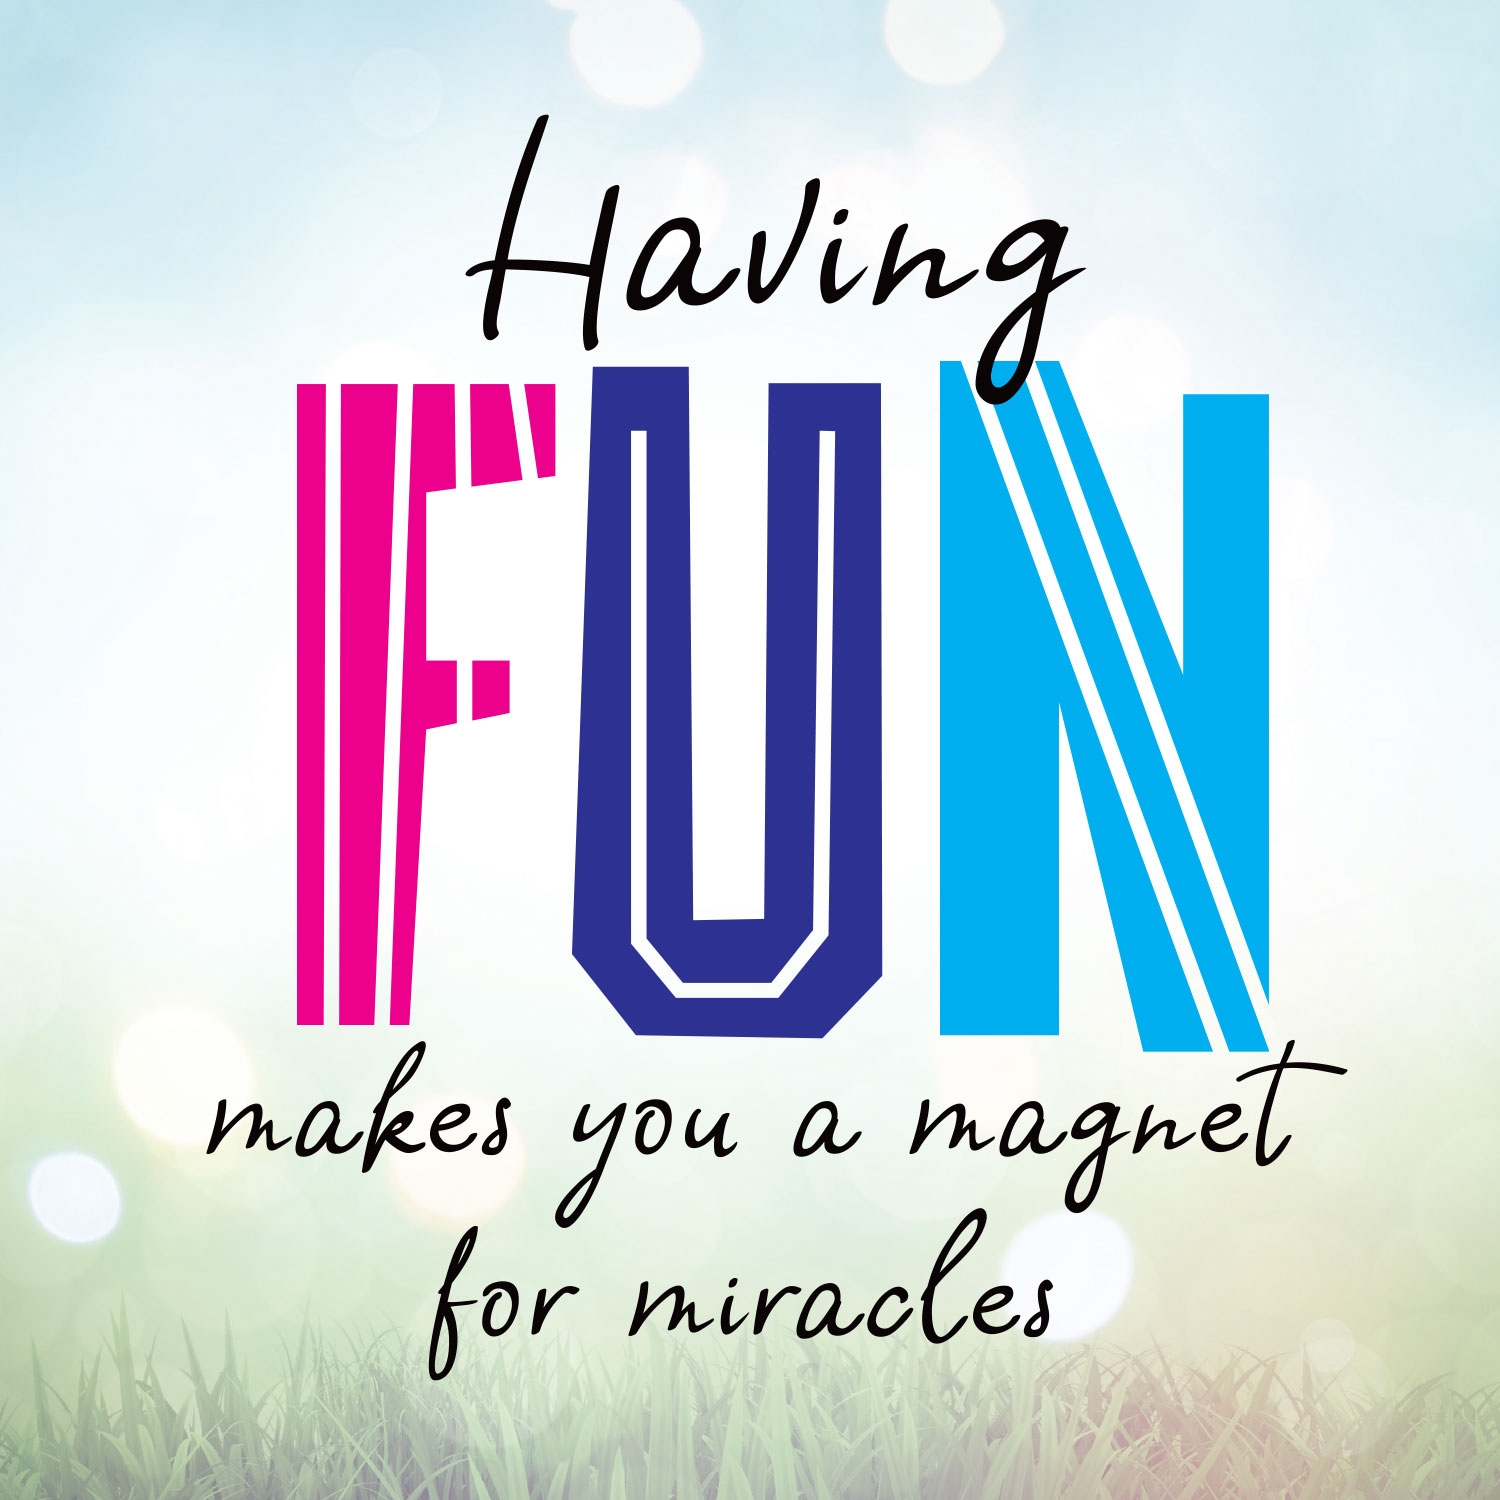 having fun makes you a magnet for miracles|manifesting secrets